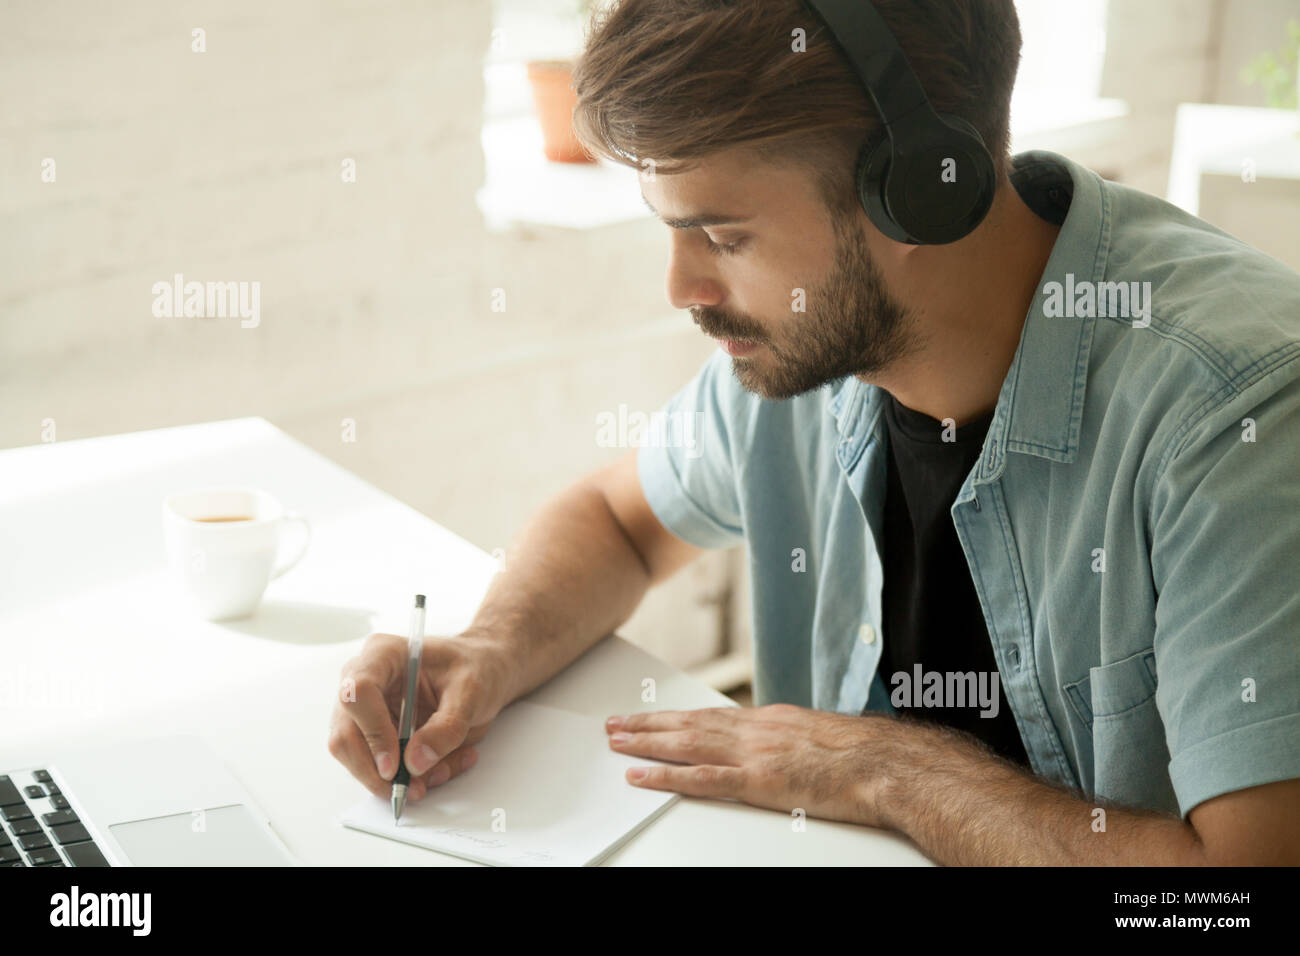 Concentrated worker in headphones watching webinar noting import - Stock Image